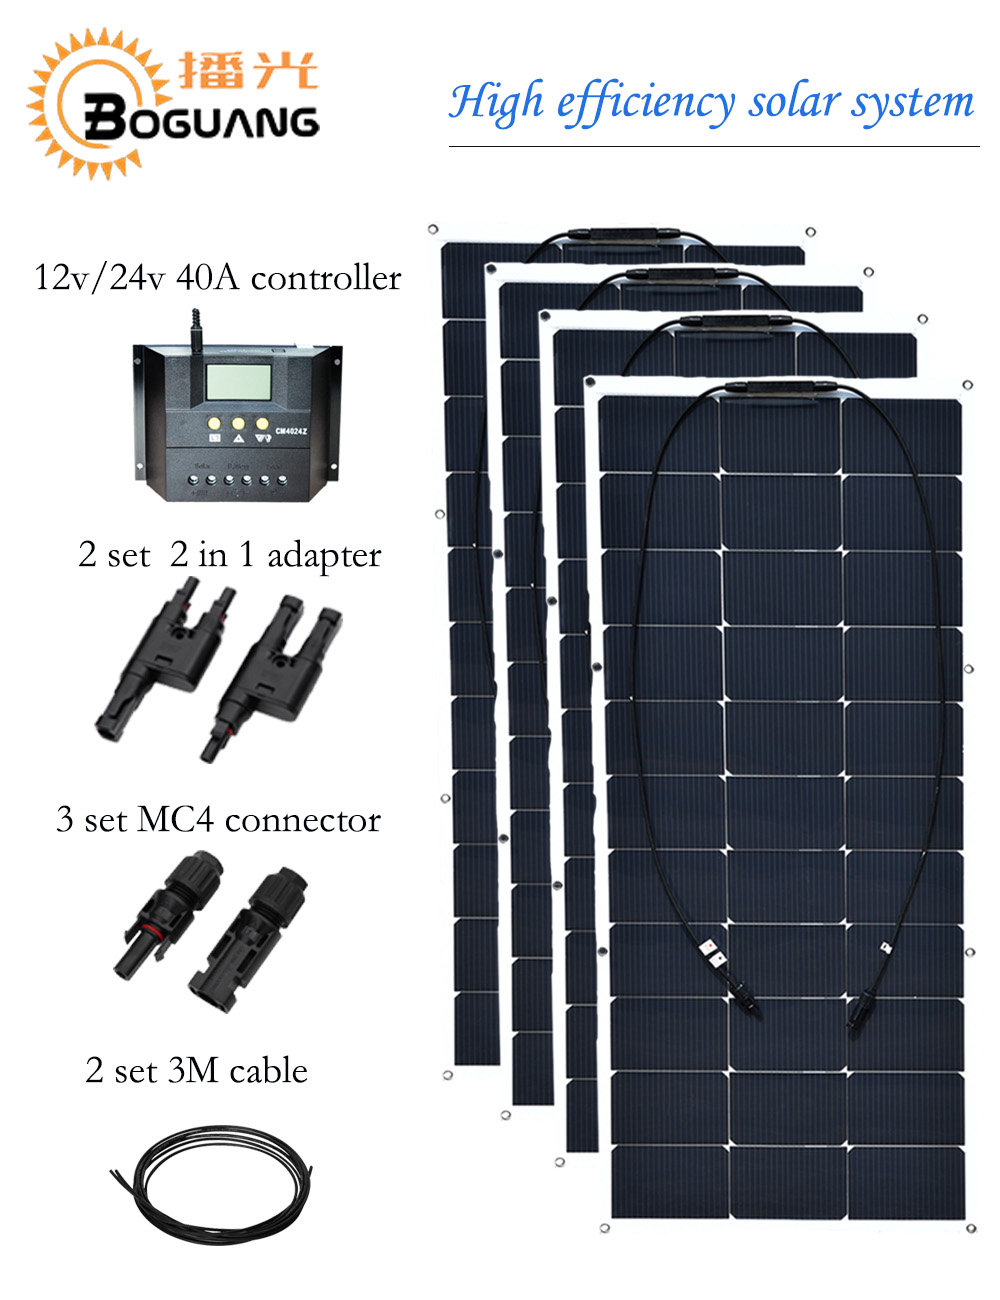 BOGUANG 400w flexible solar panel cell 12v 24v 40A controller 2 in 1 adapter MC4 connector cable 12v battery RV yacht boat boguang 40w flexible solar panel mc4 connector high efficiency solar cell solar module for rv boat yacht motor home car